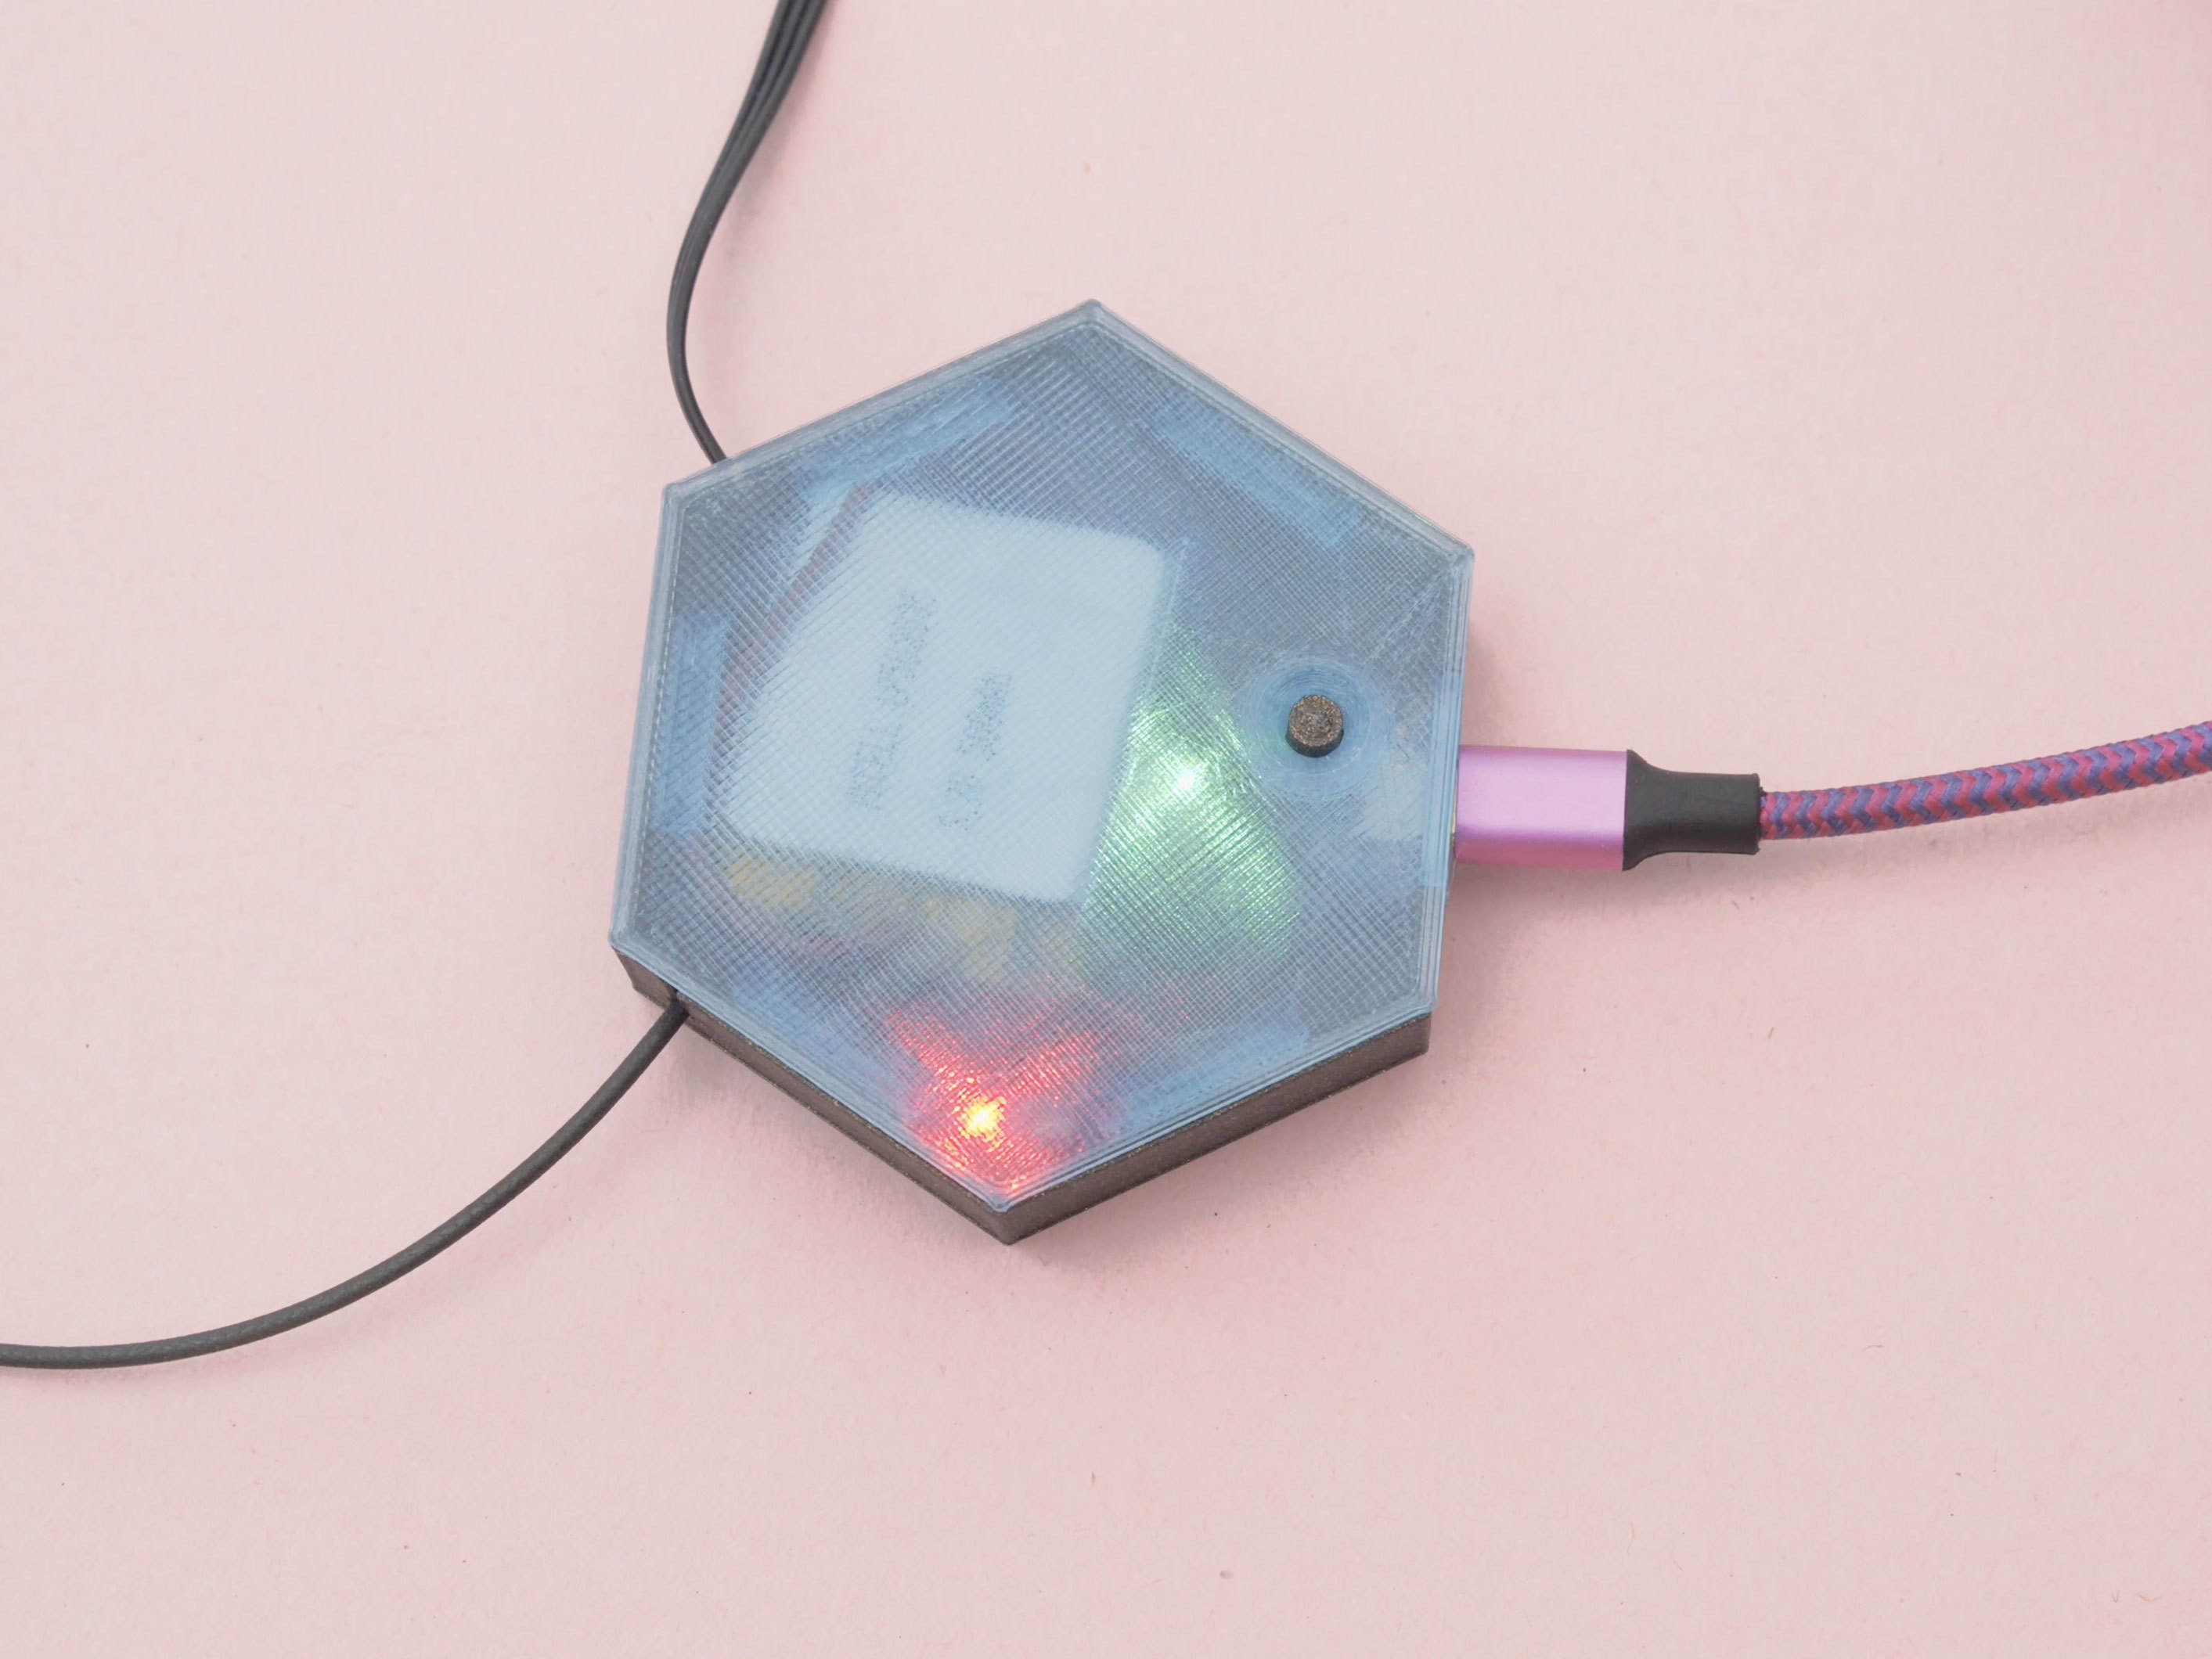 case-recharge-reset.jpg Download free STL file ItsyBitsy Case (M0, M4 and nRF52840) • 3D print object, Adafruit